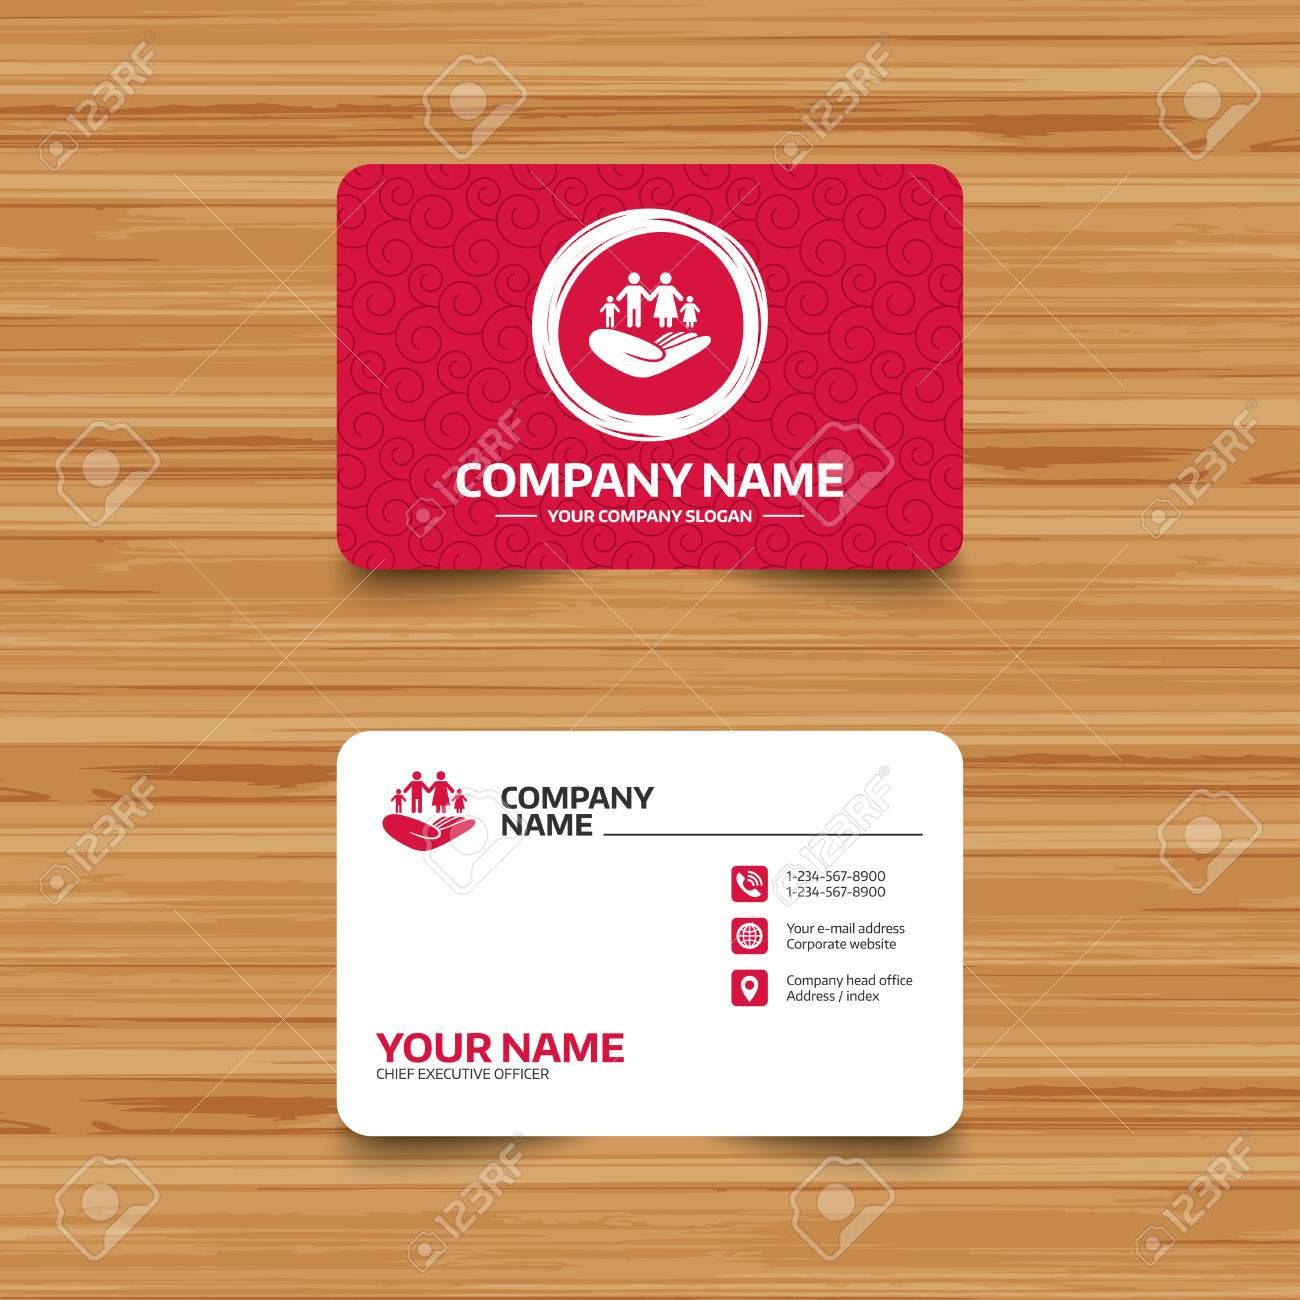 Business card template with texture family life insurance sign business card template with texture family life insurance sign hand holds human group symbol colourmoves